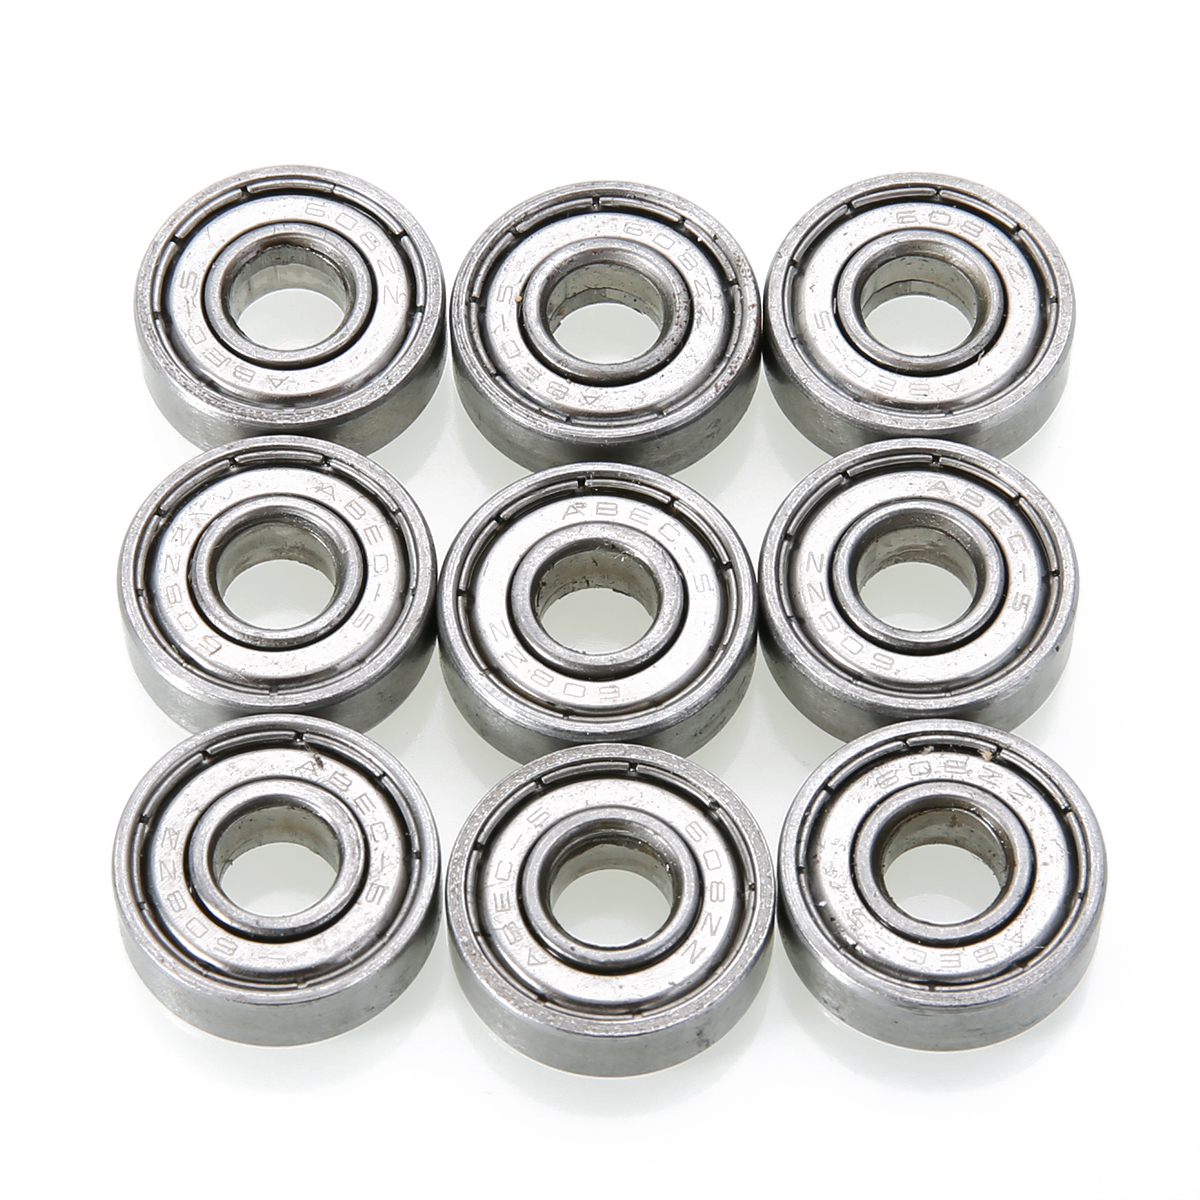 10pcs 608zz Deep Groove Bearings Carbon Steel Ball Bearing DIY Hardware Accessories купить